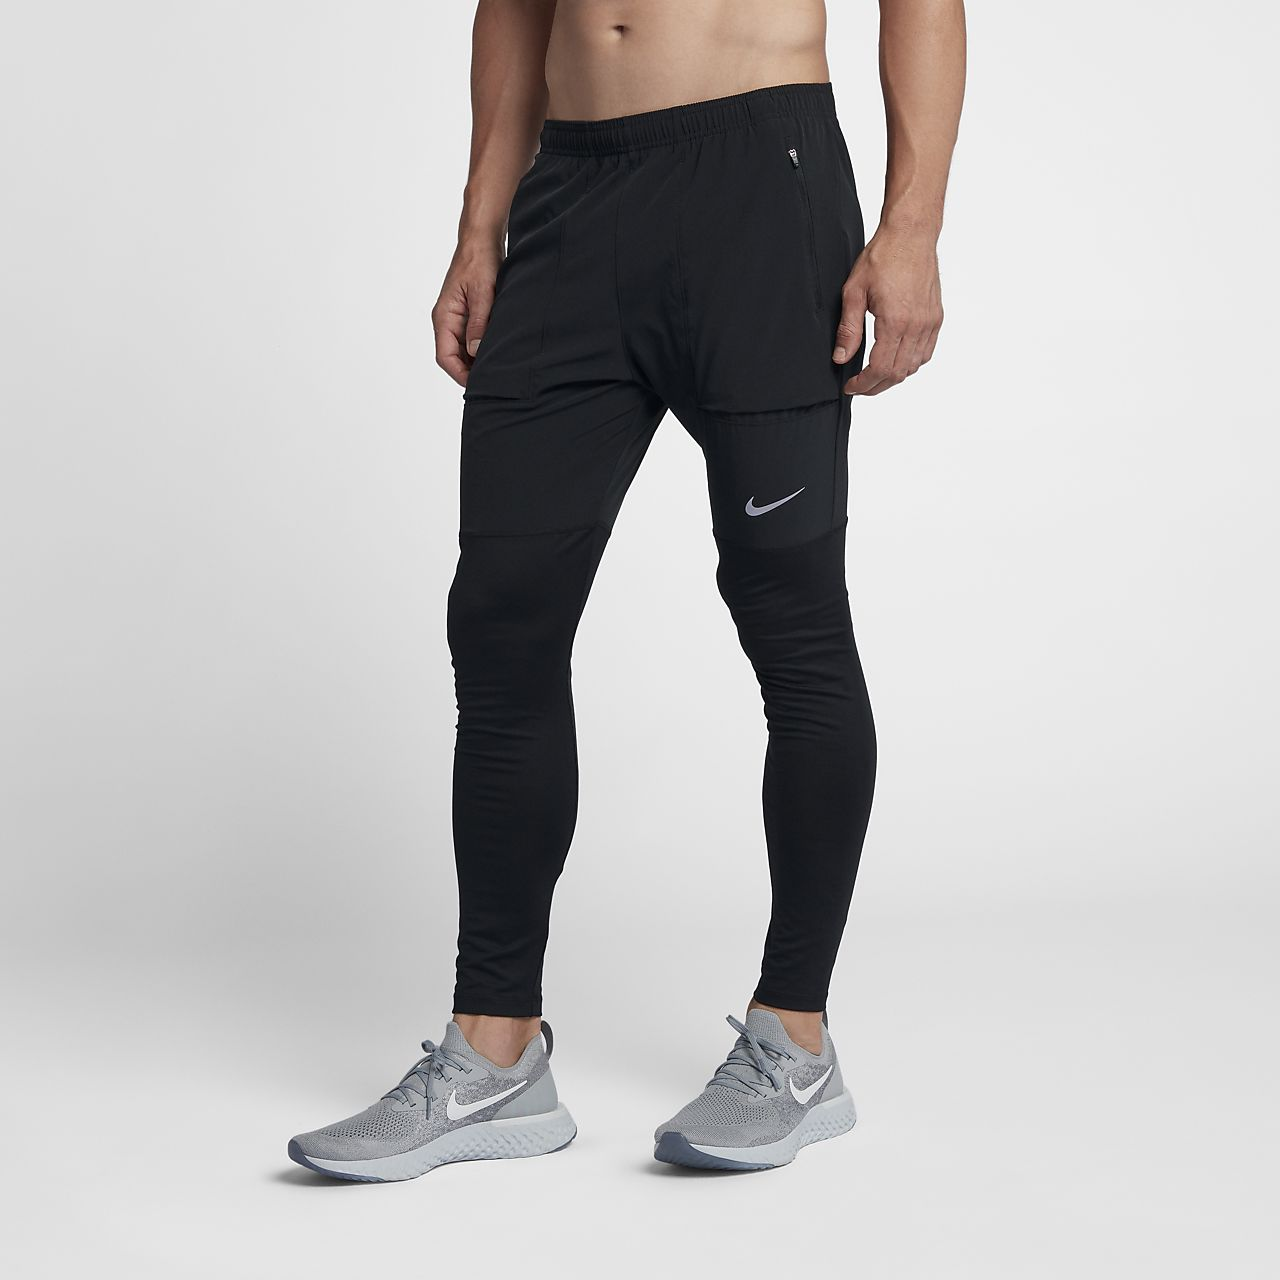 Nike Essential Men's Running Trousers